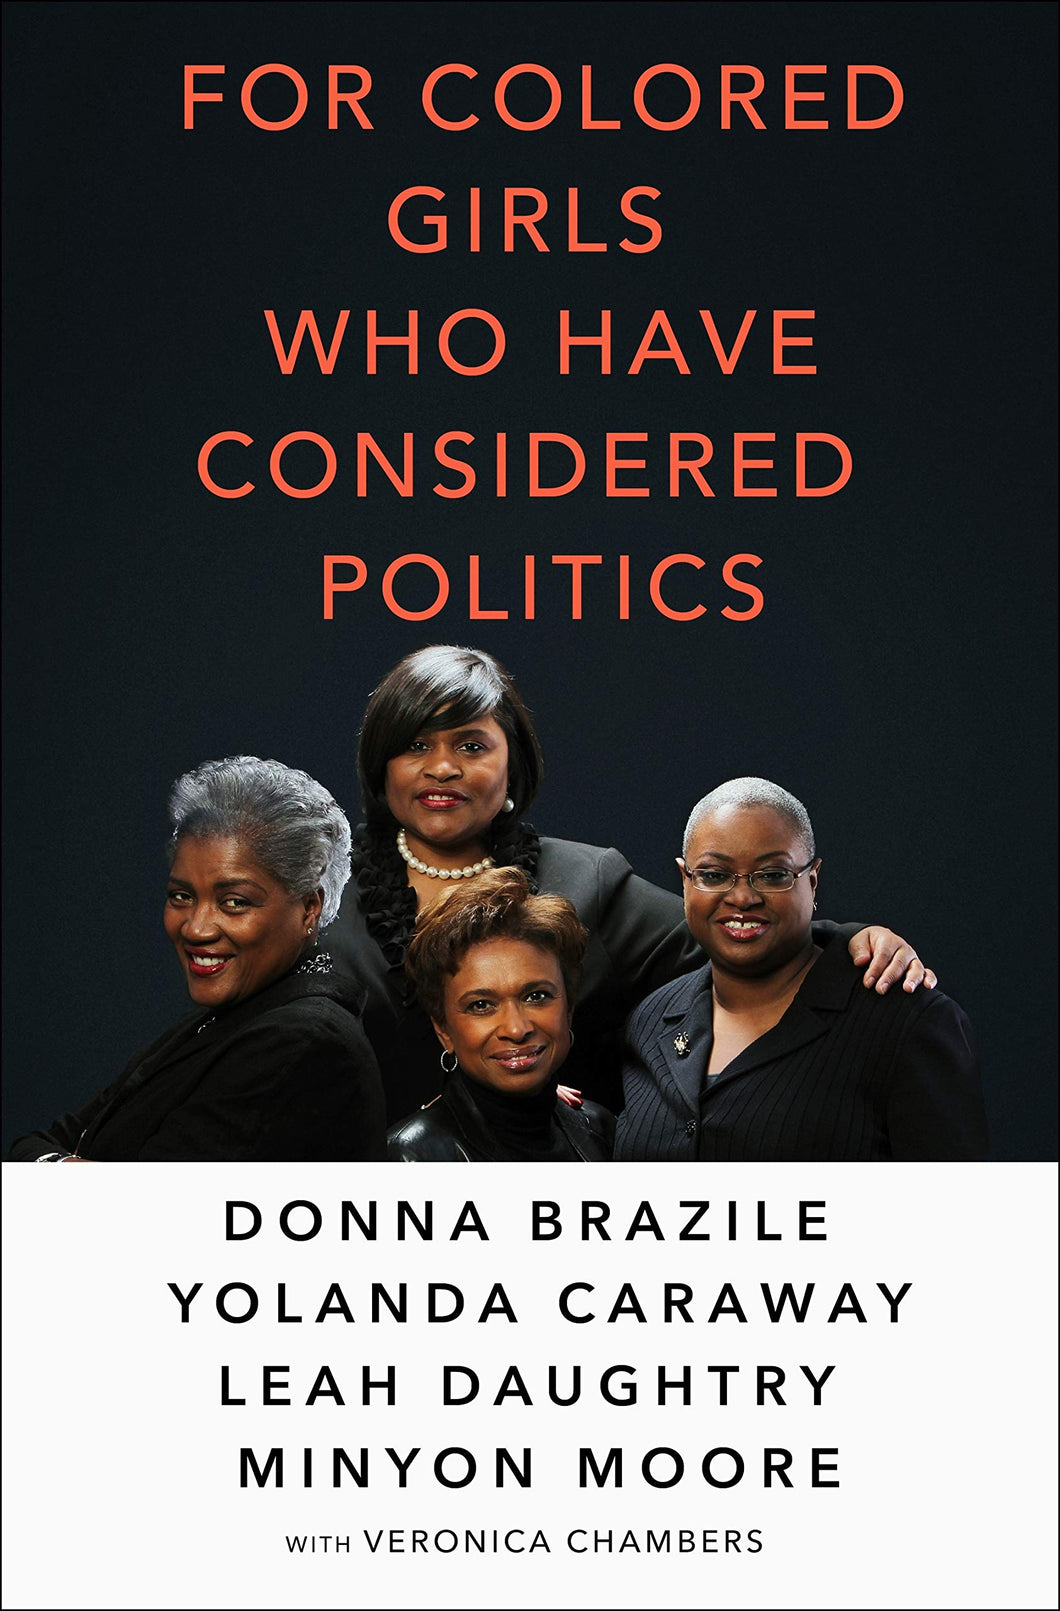 For Colored Girls Who Have Considered Politics by Donna Brazile, Yolanda Caraway, Leah Daughtry, and Minyon Moore